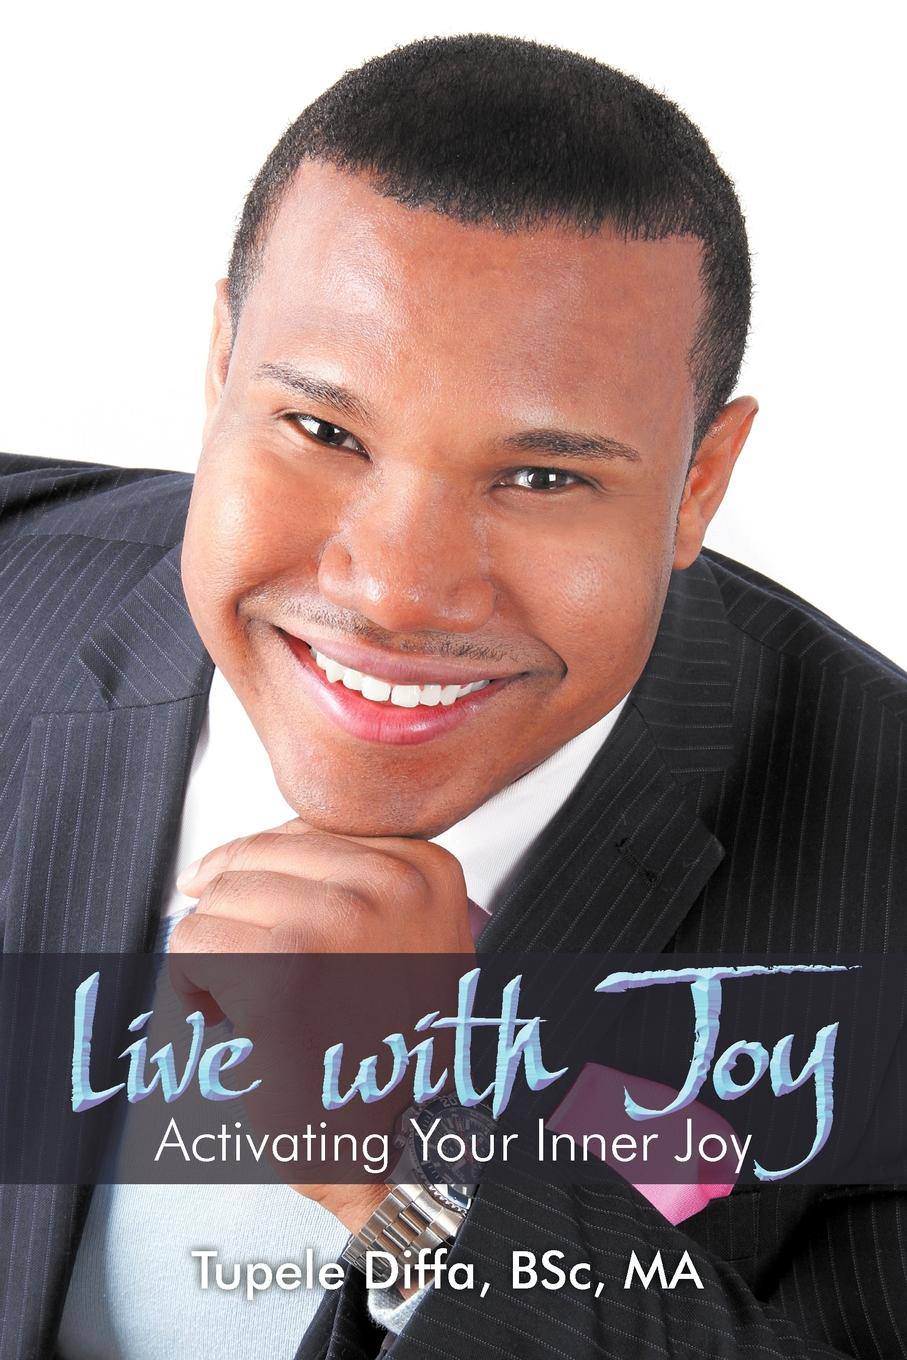 Tupele BSc Diffa MA Live with Joy. Activating Your Inner Joy цена